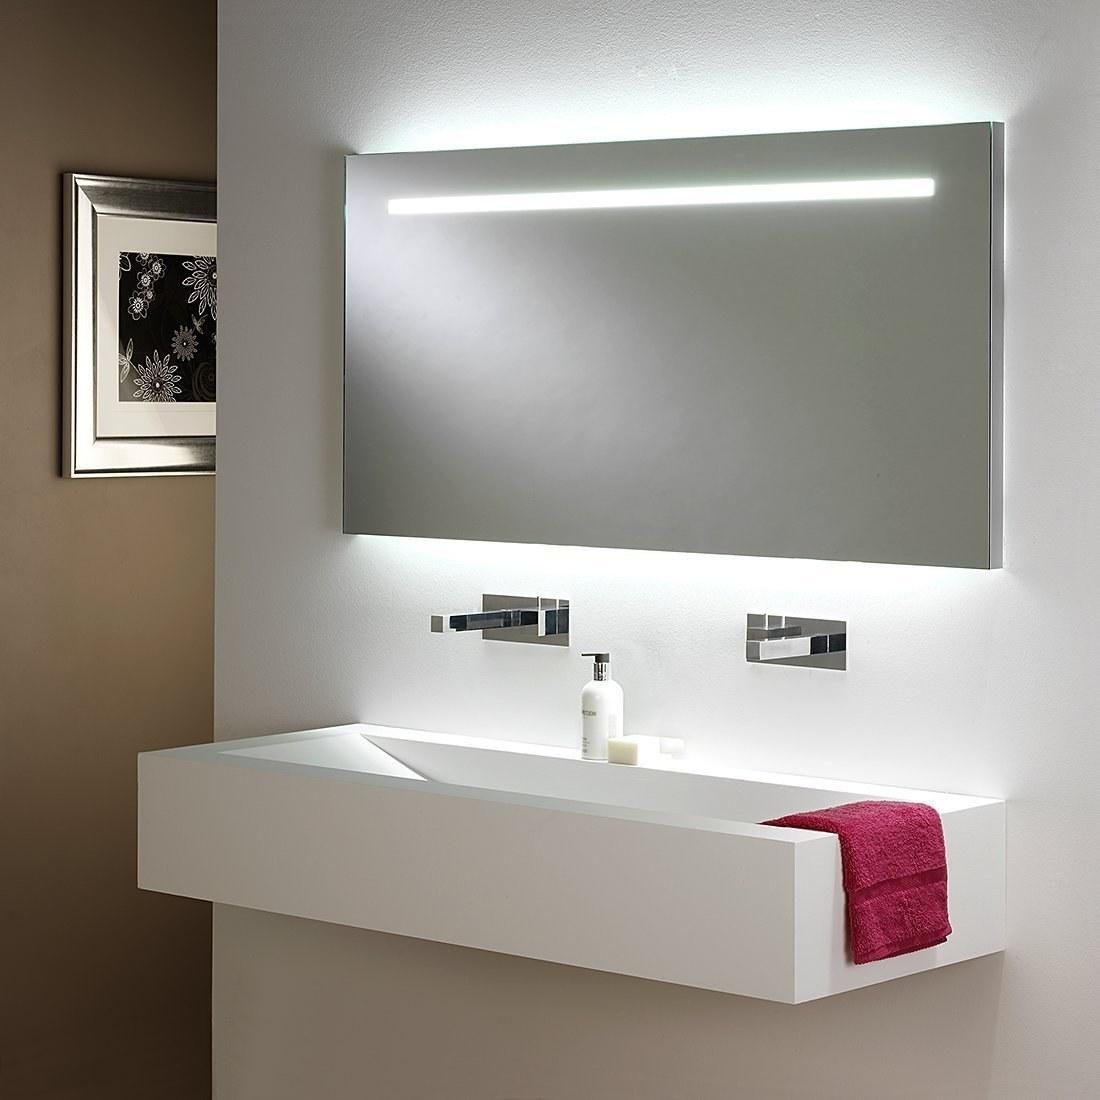 Bathroom Cabinets : Bathroom Mirror Lights Your Style With For Mirrors With Lights For Bathroom (View 11 of 20)